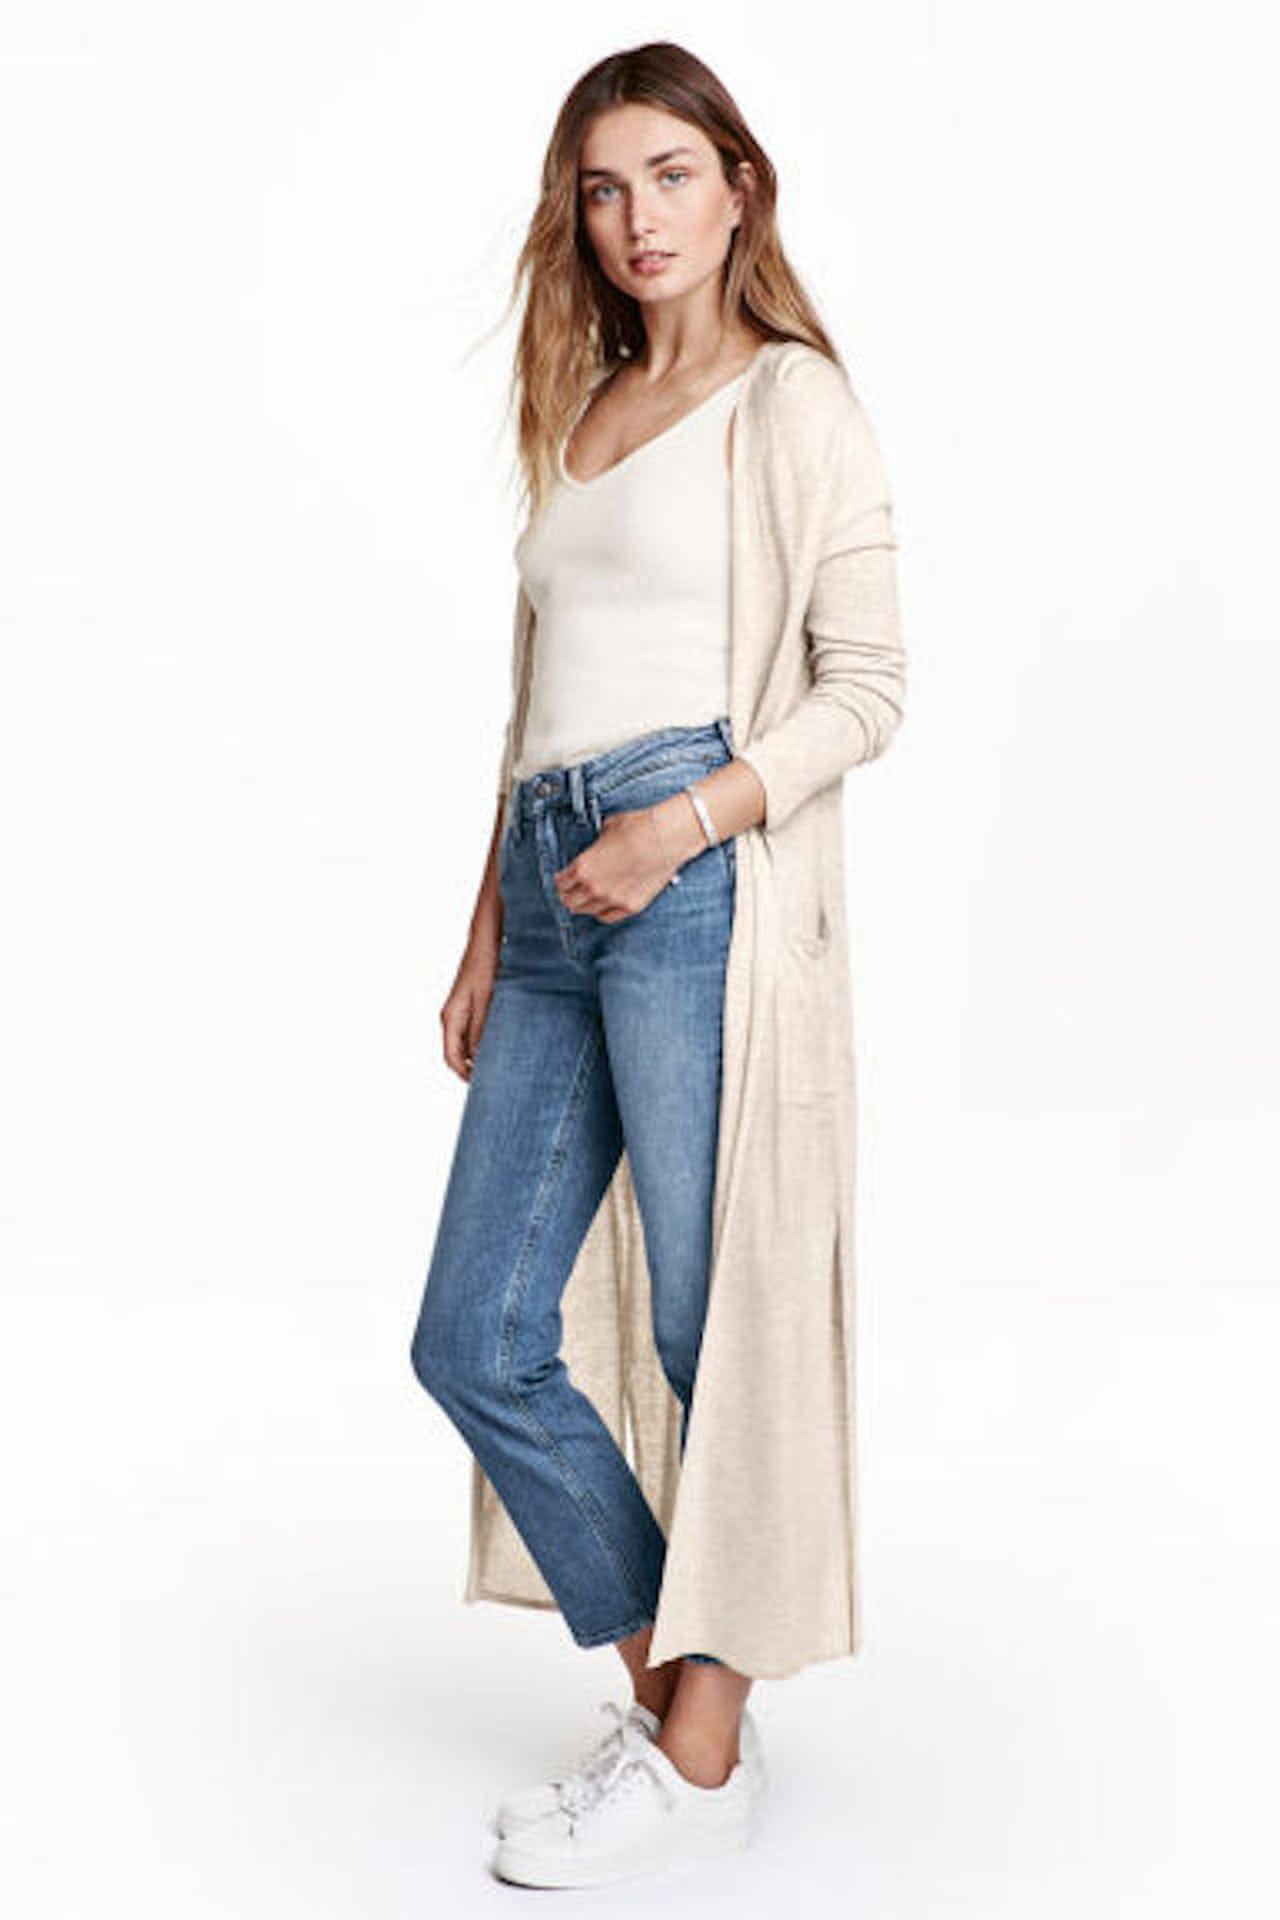 reputable site 2fe9e 5bdfa Moda donna casual: i must have dello stile